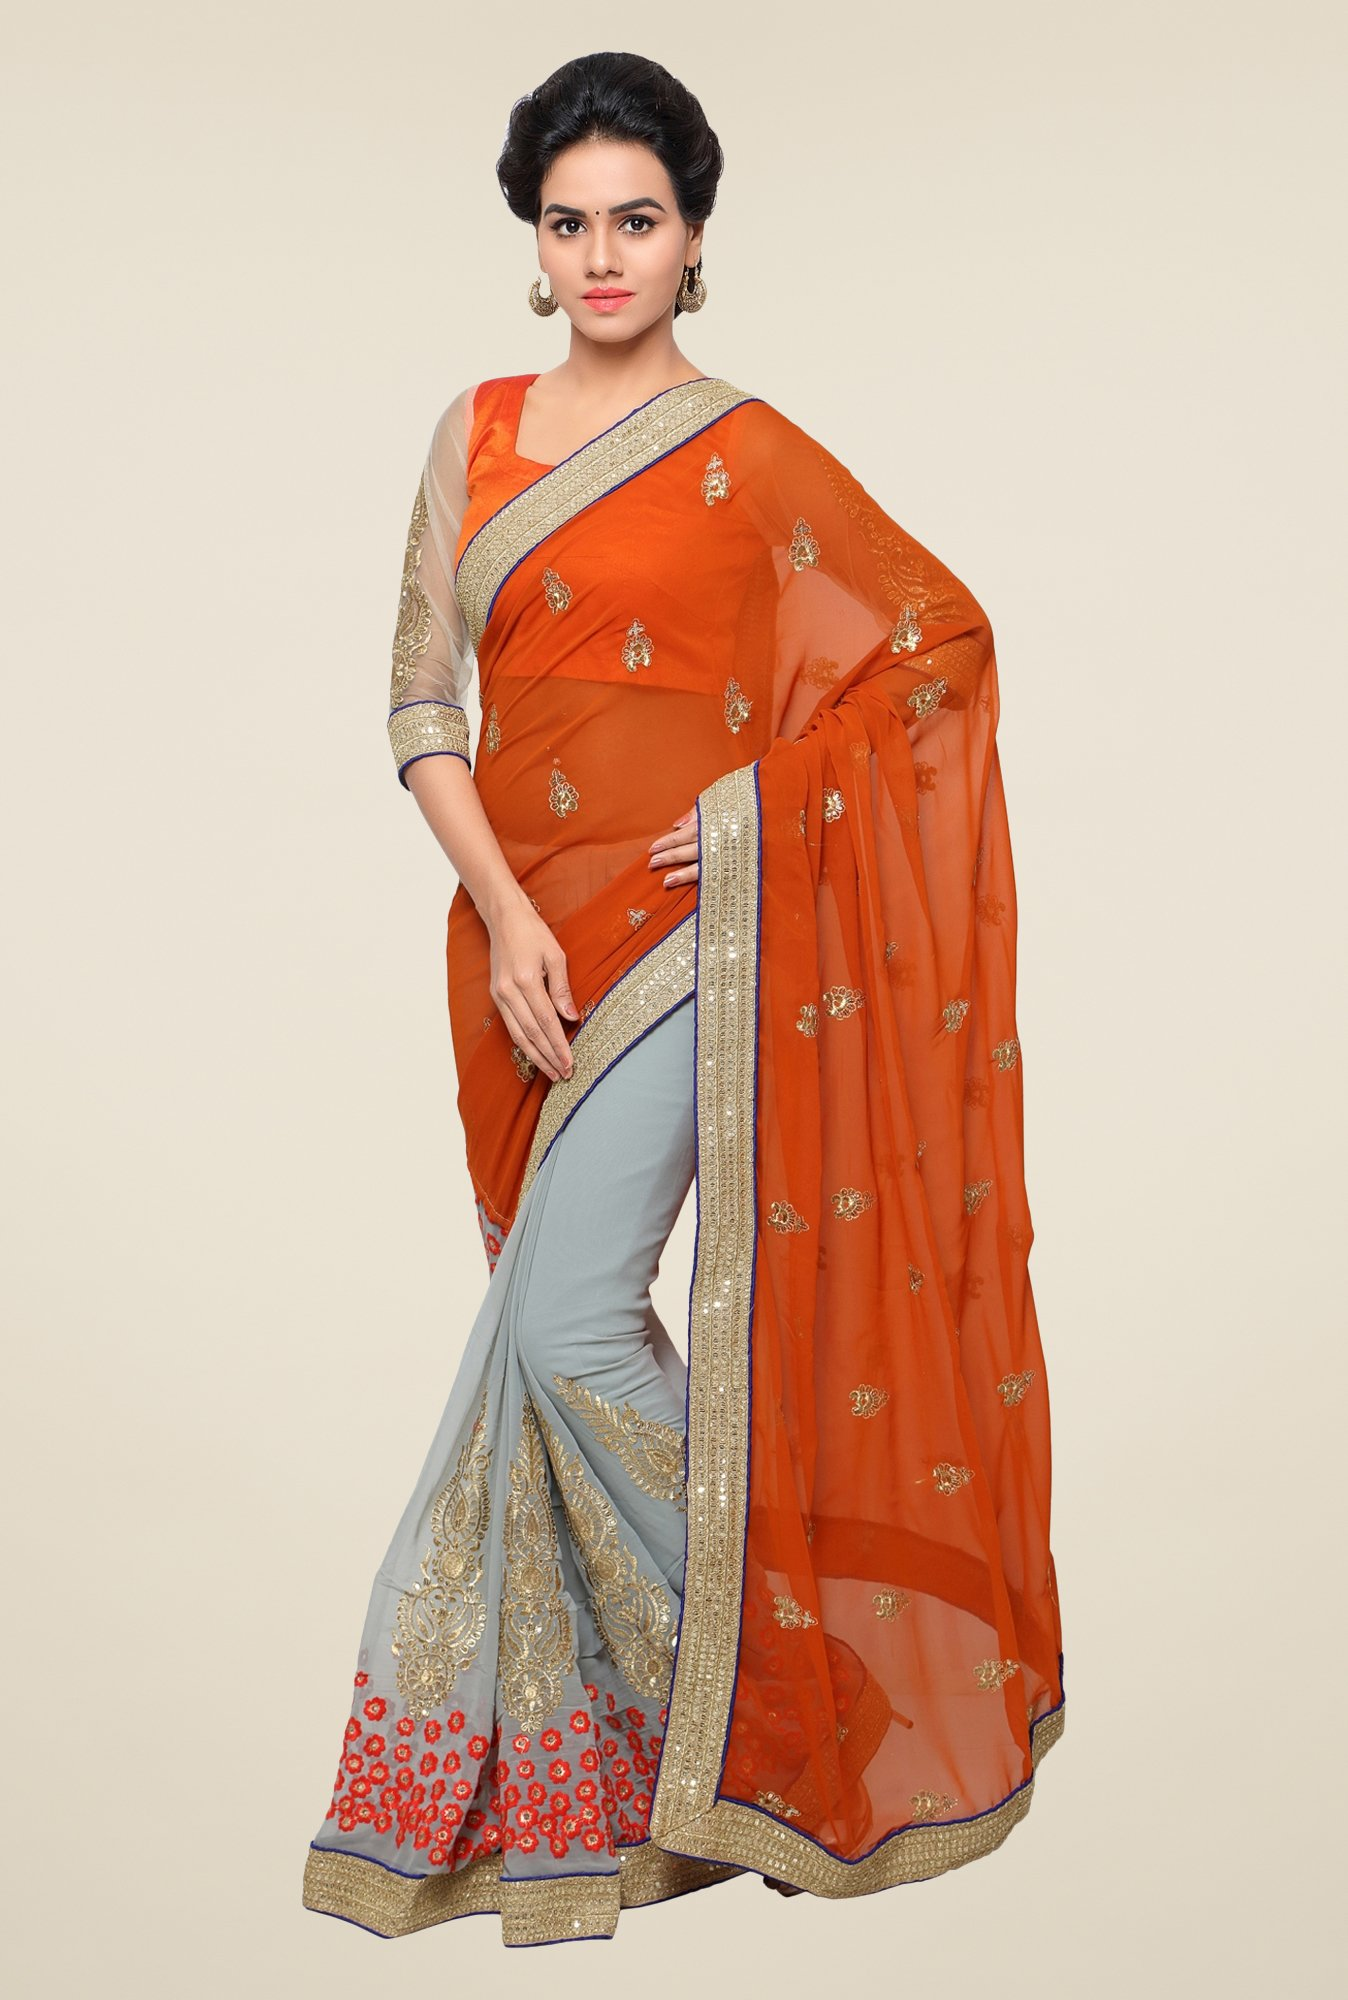 Triveni Grey & Rust Embroidered Faux Georgette Saree